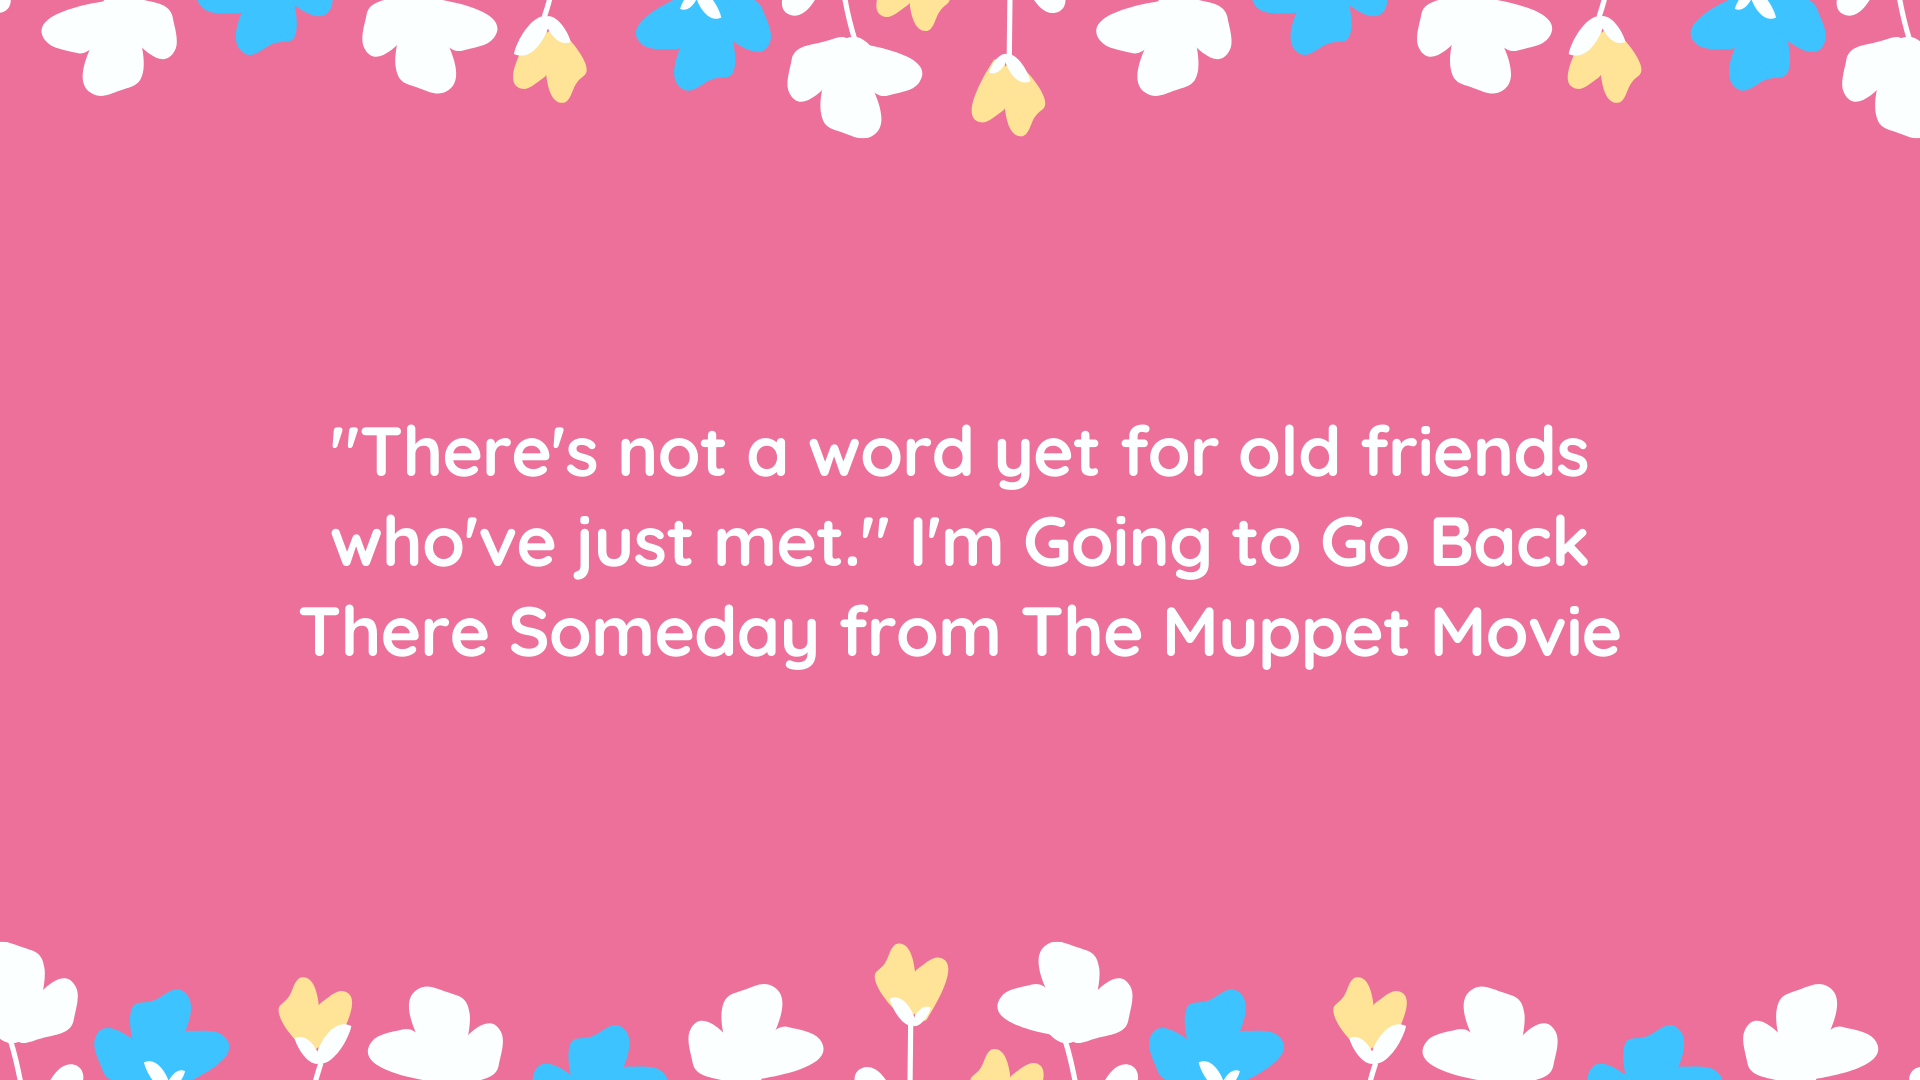 """There's not a word yet for old friends who've just met."" I'm Going to Go Back There Someday from The Muppet Movie"